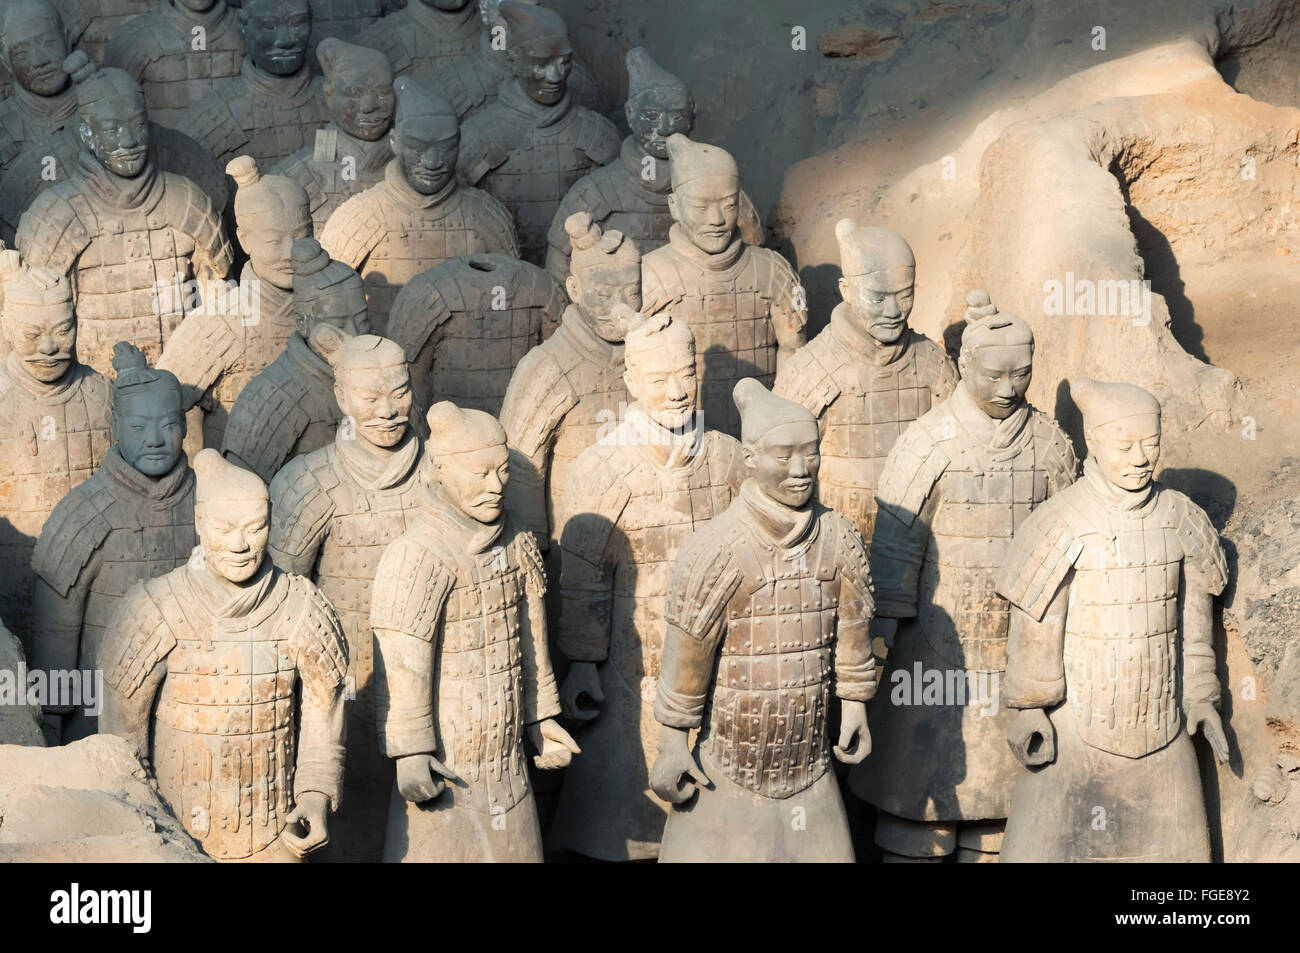 Museum of the Terracotta Warriors, Mausoleum of the first Qin Emperor, Xian, Shaanxi Province, China - Stock Image